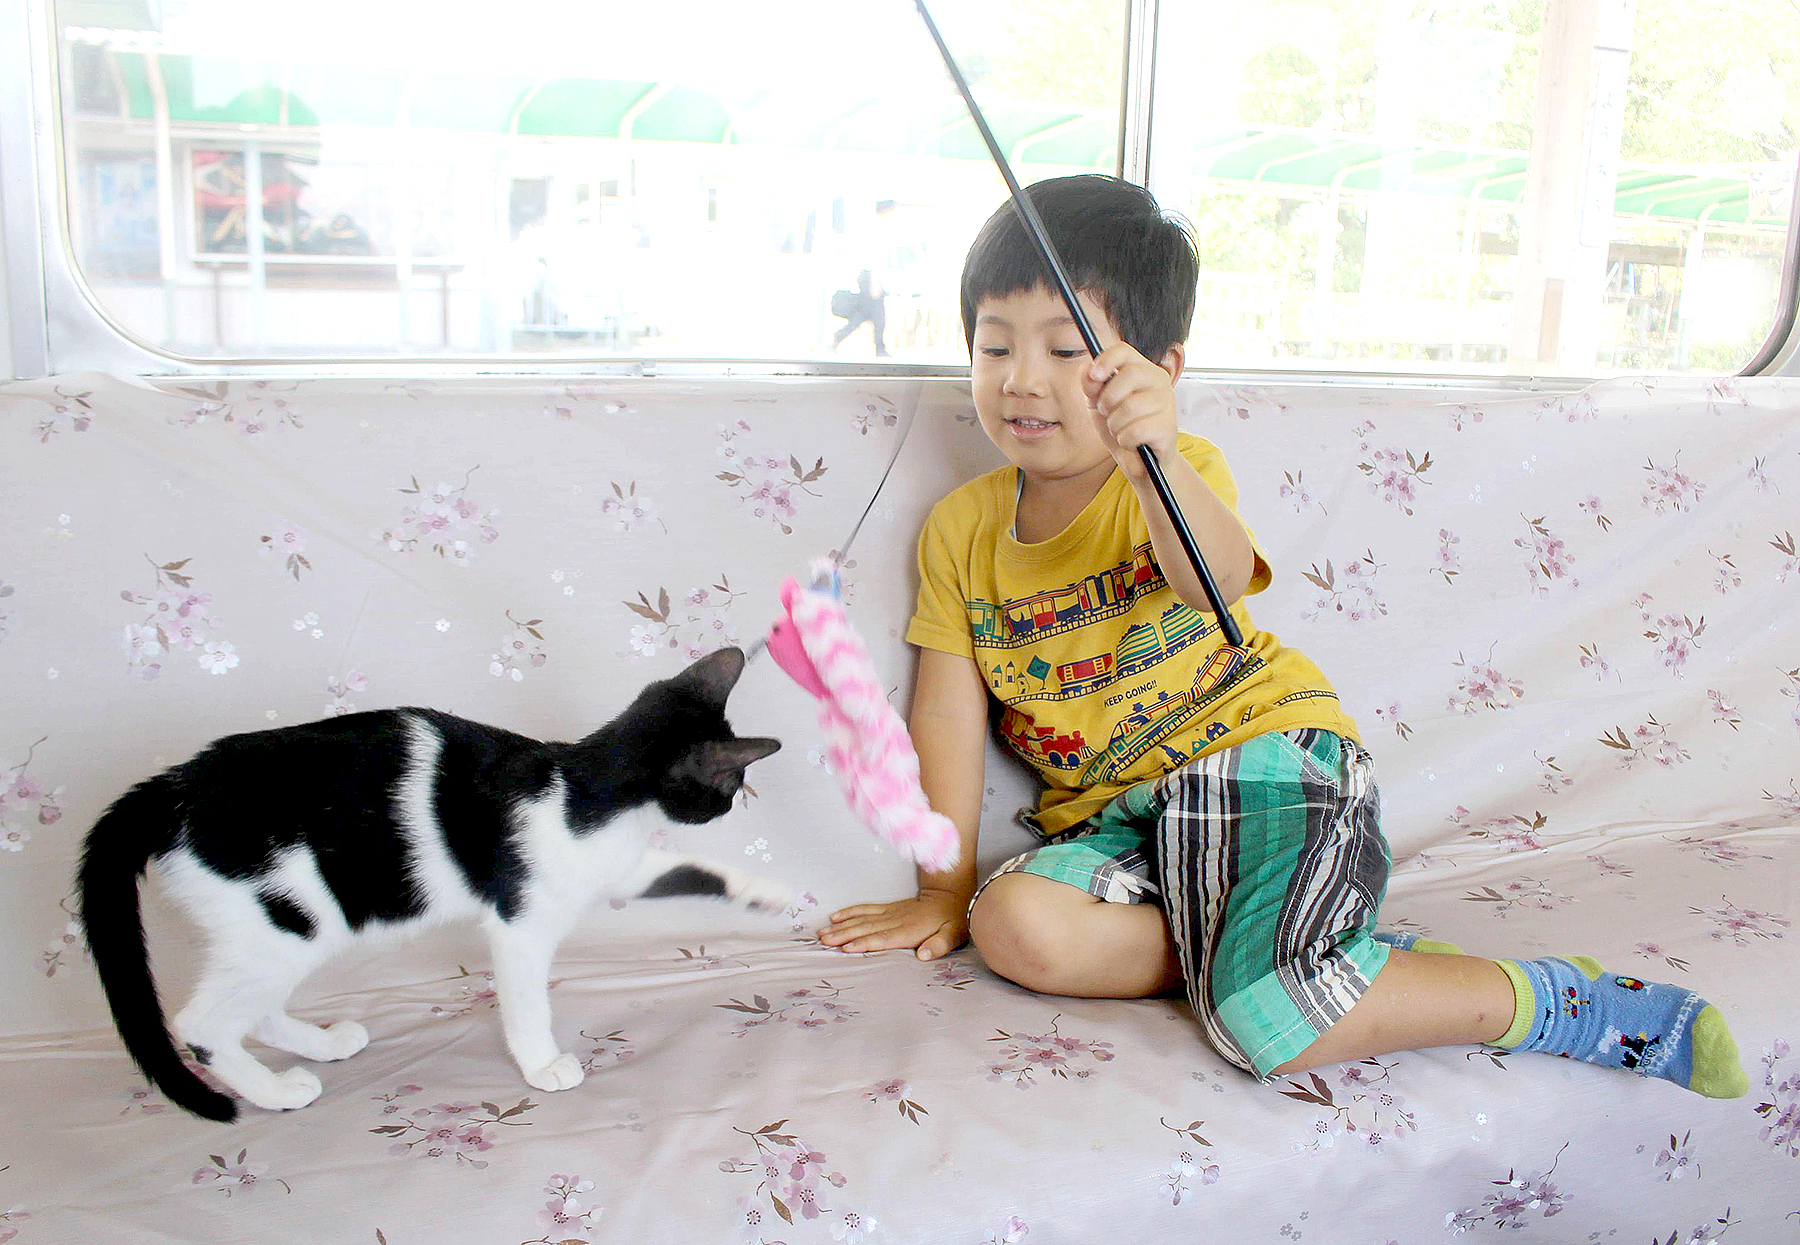 A boy plays with a cat aboard a cat cafe train on the Yoro Railway line between Gifu and Mie prefectures in central Japan in a one-day event on Sept. 10, 2017.